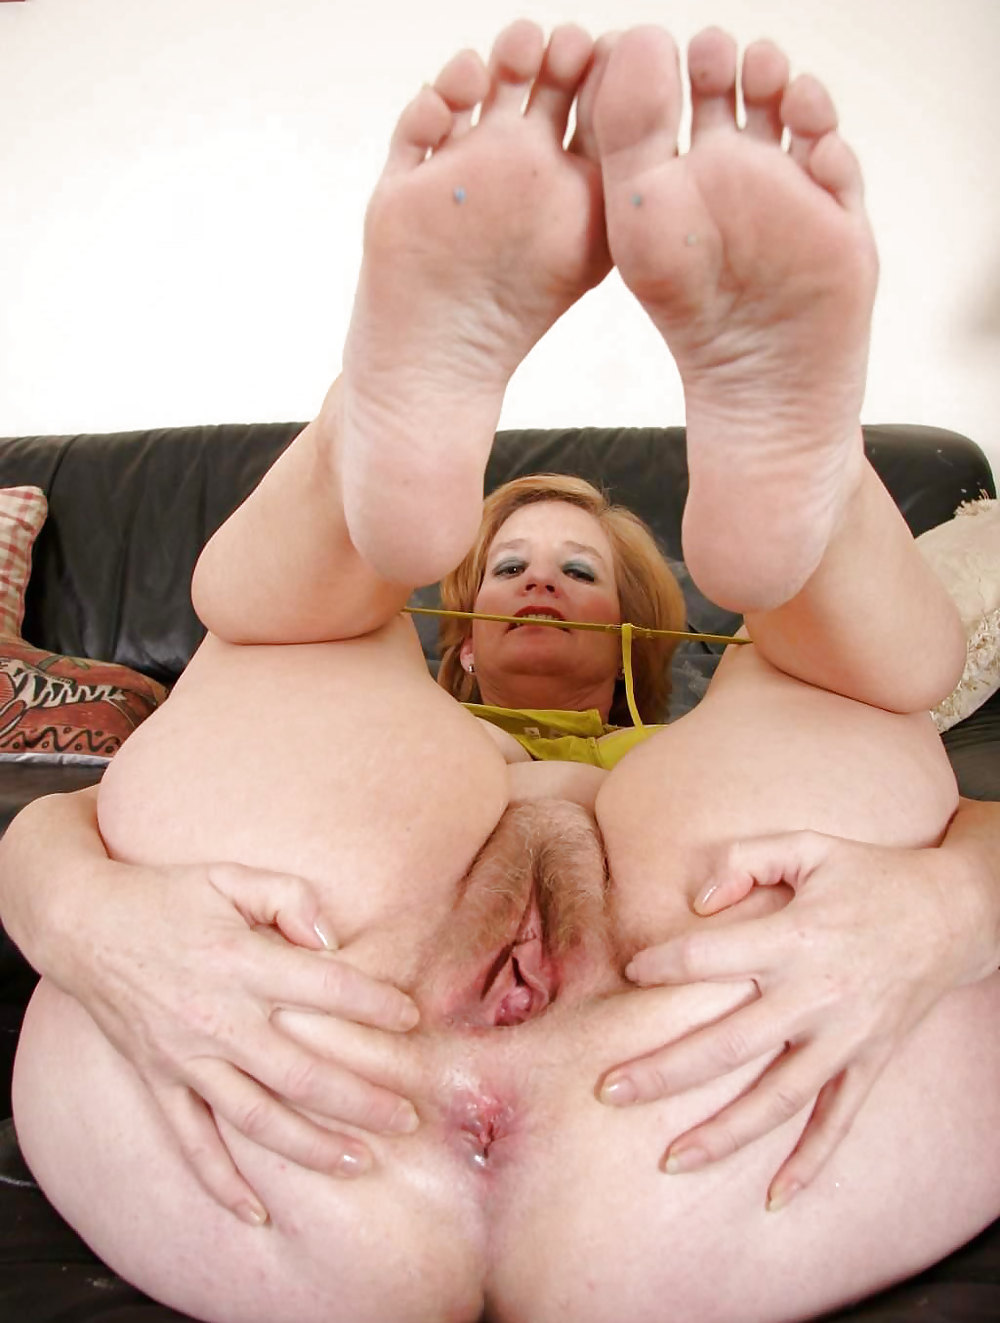 Granny asshole galleries